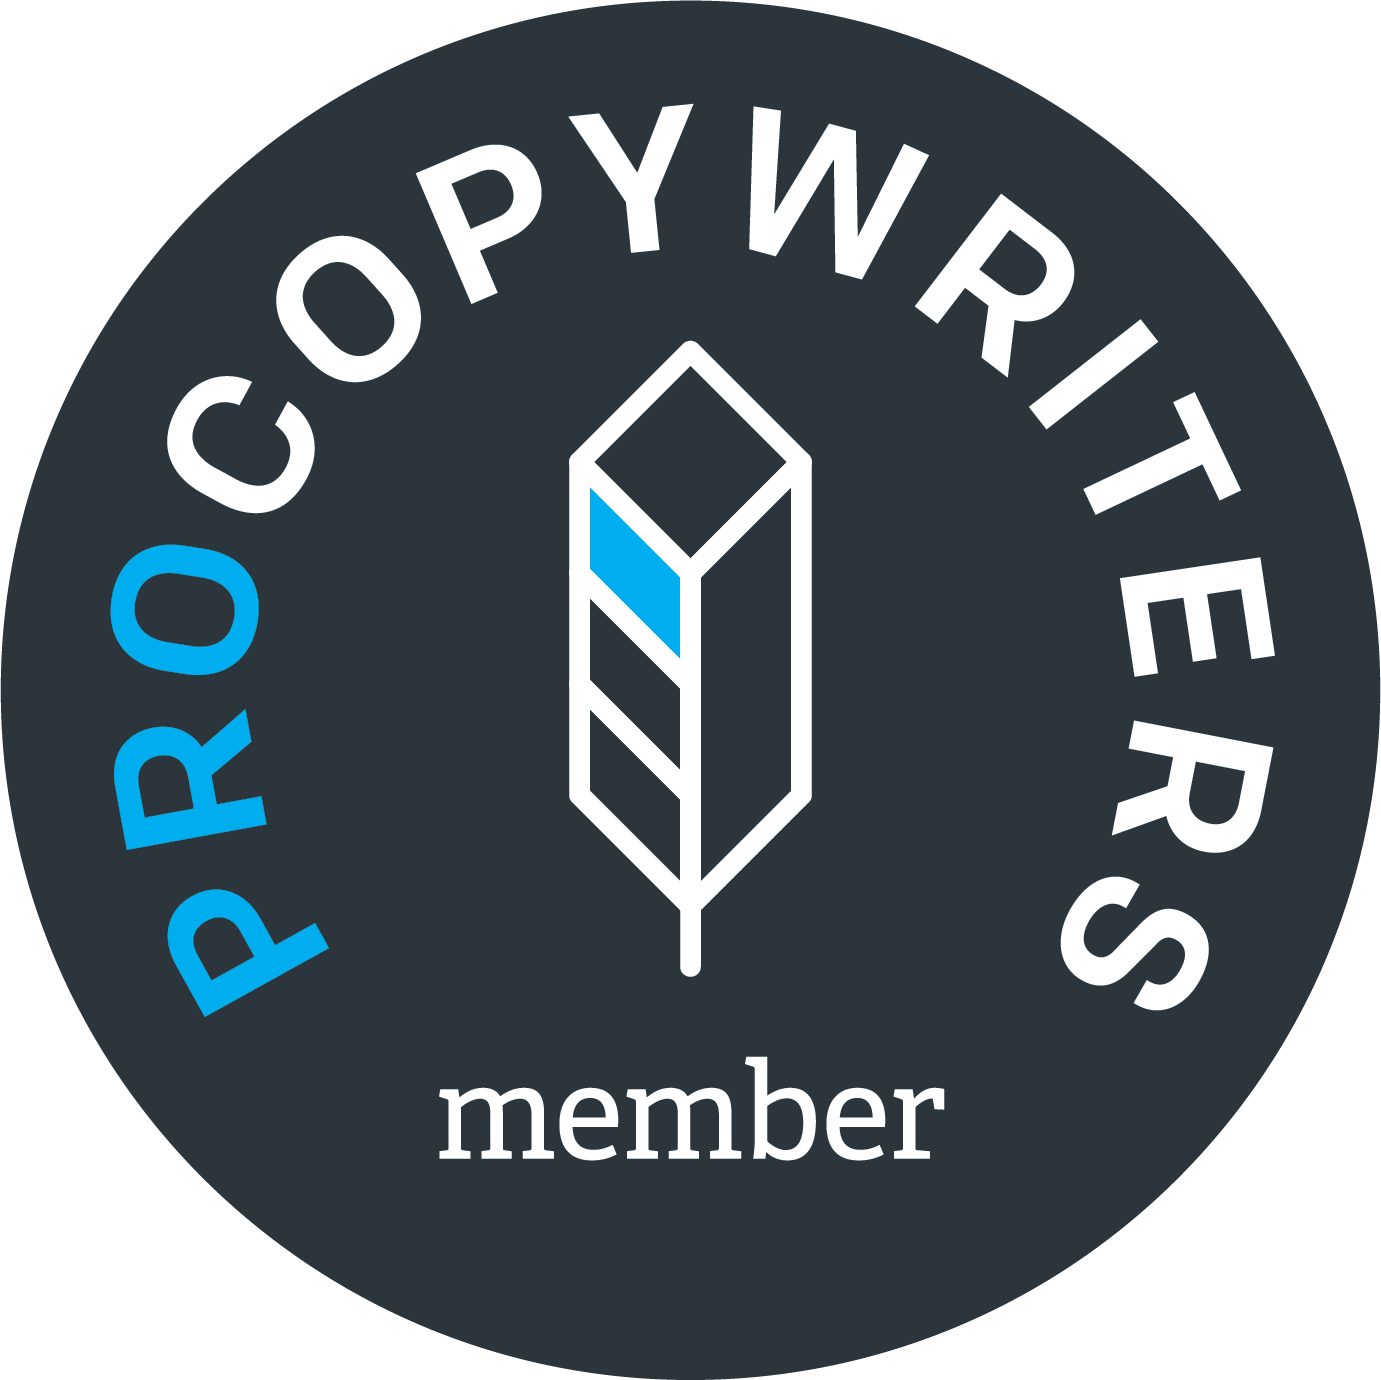 procopywriters_logo_member_dark